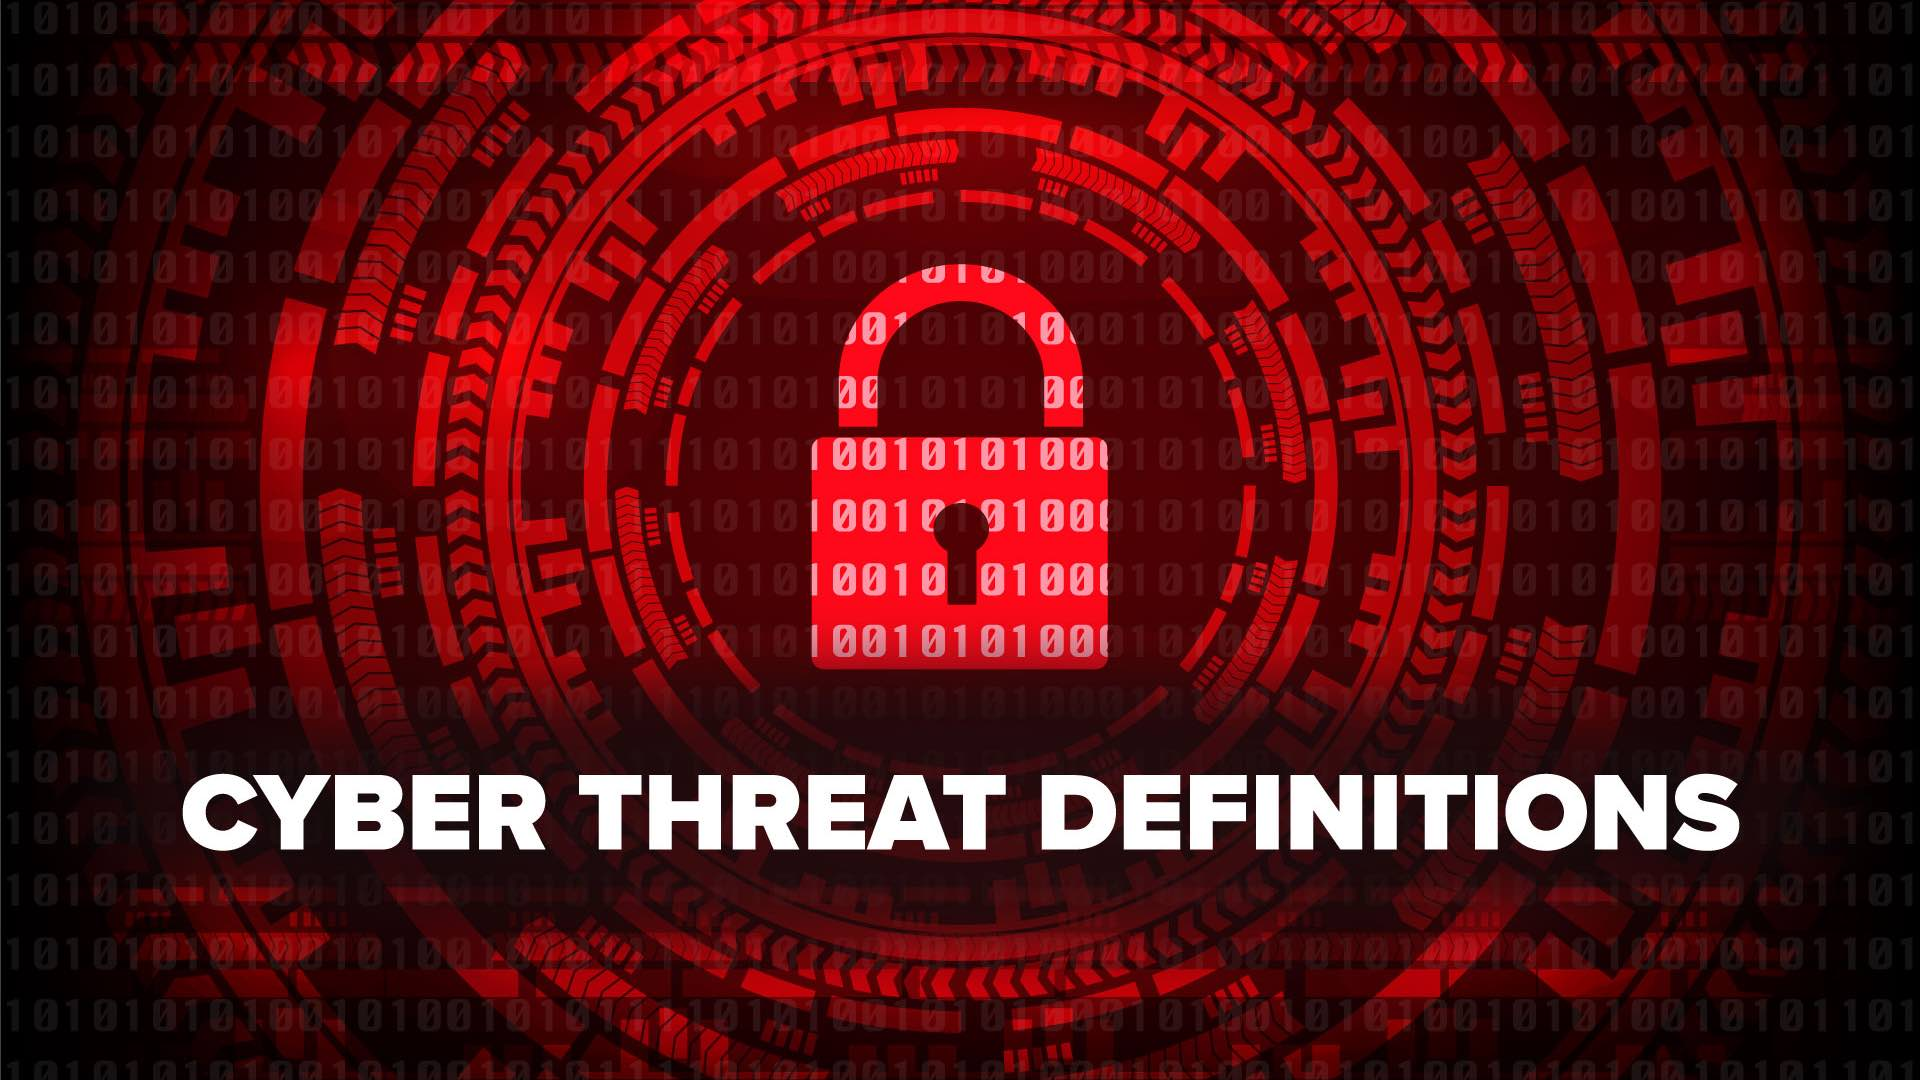 Network Security Wallpapers